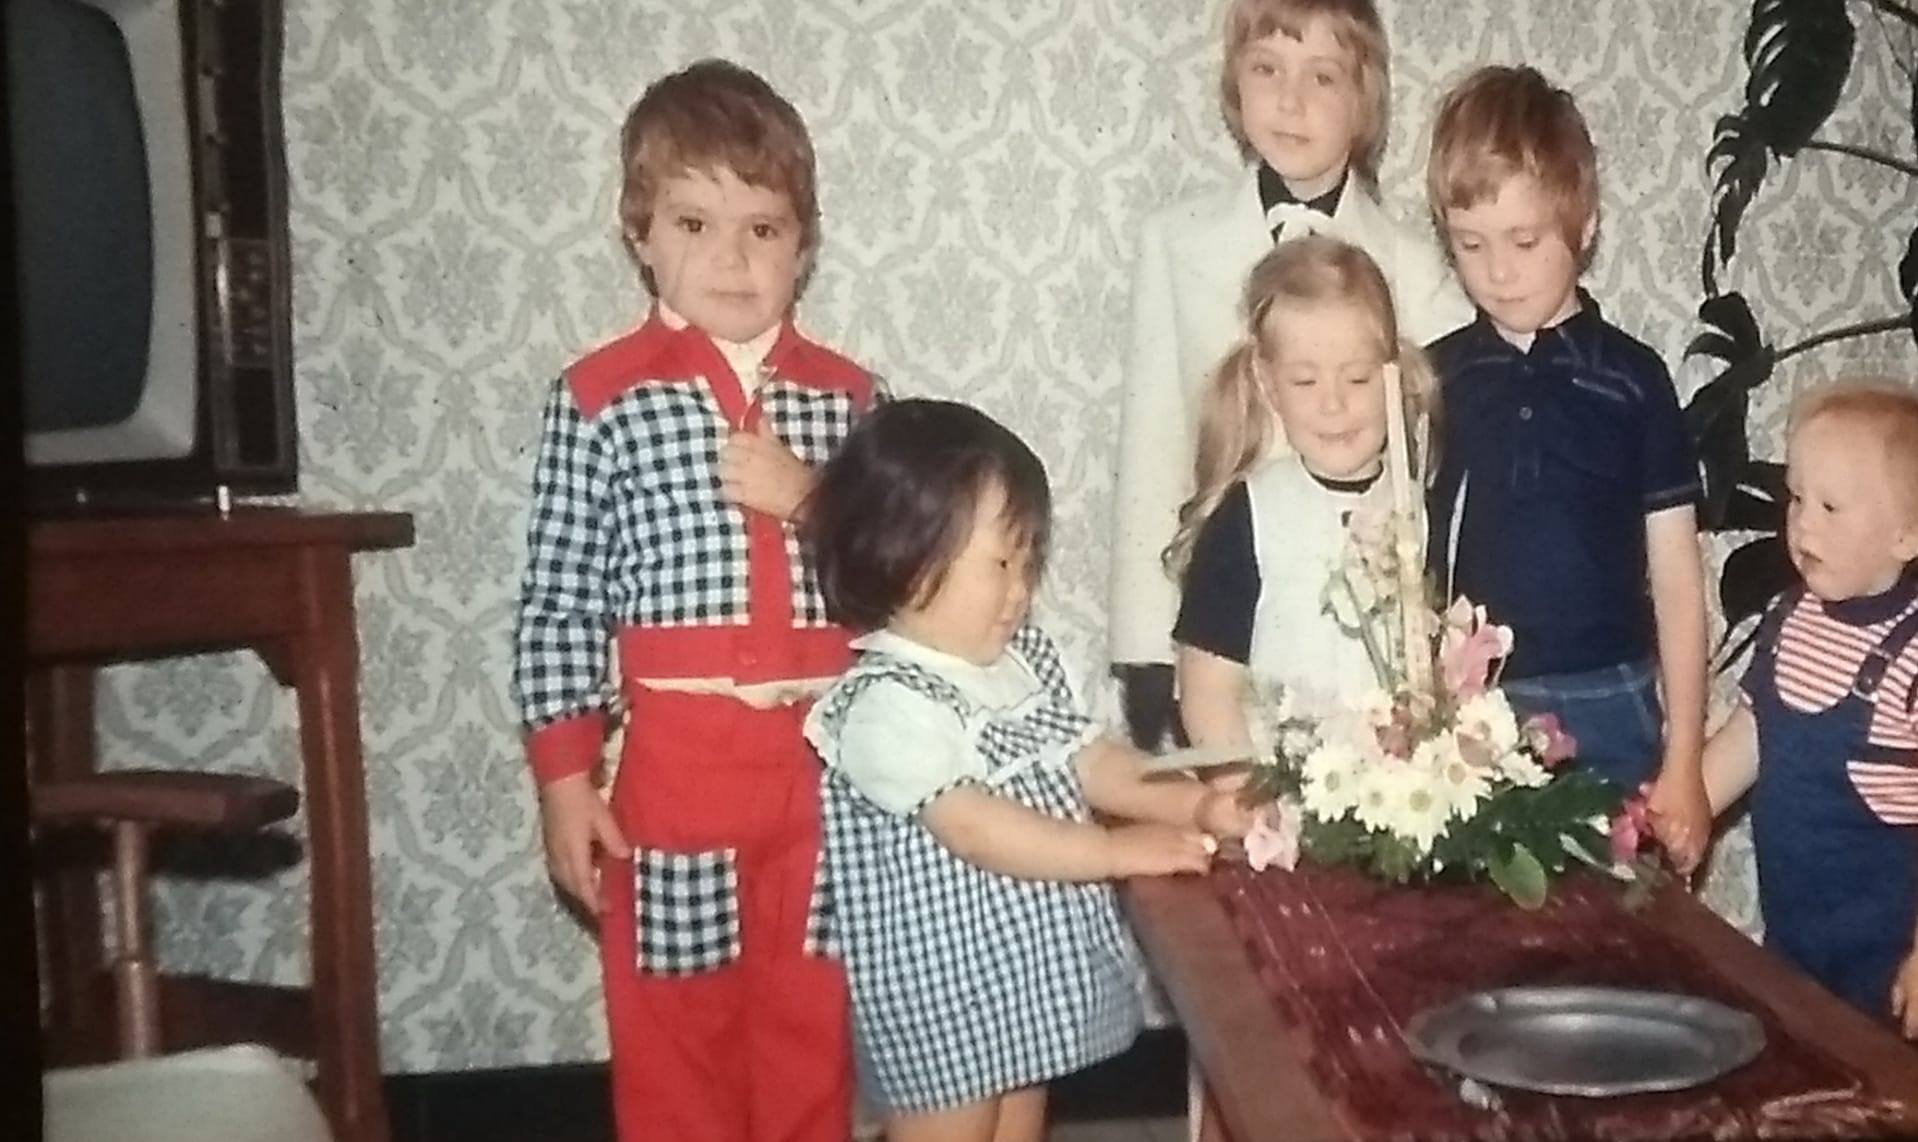 Kim as a child in Belgium with her adoptive family